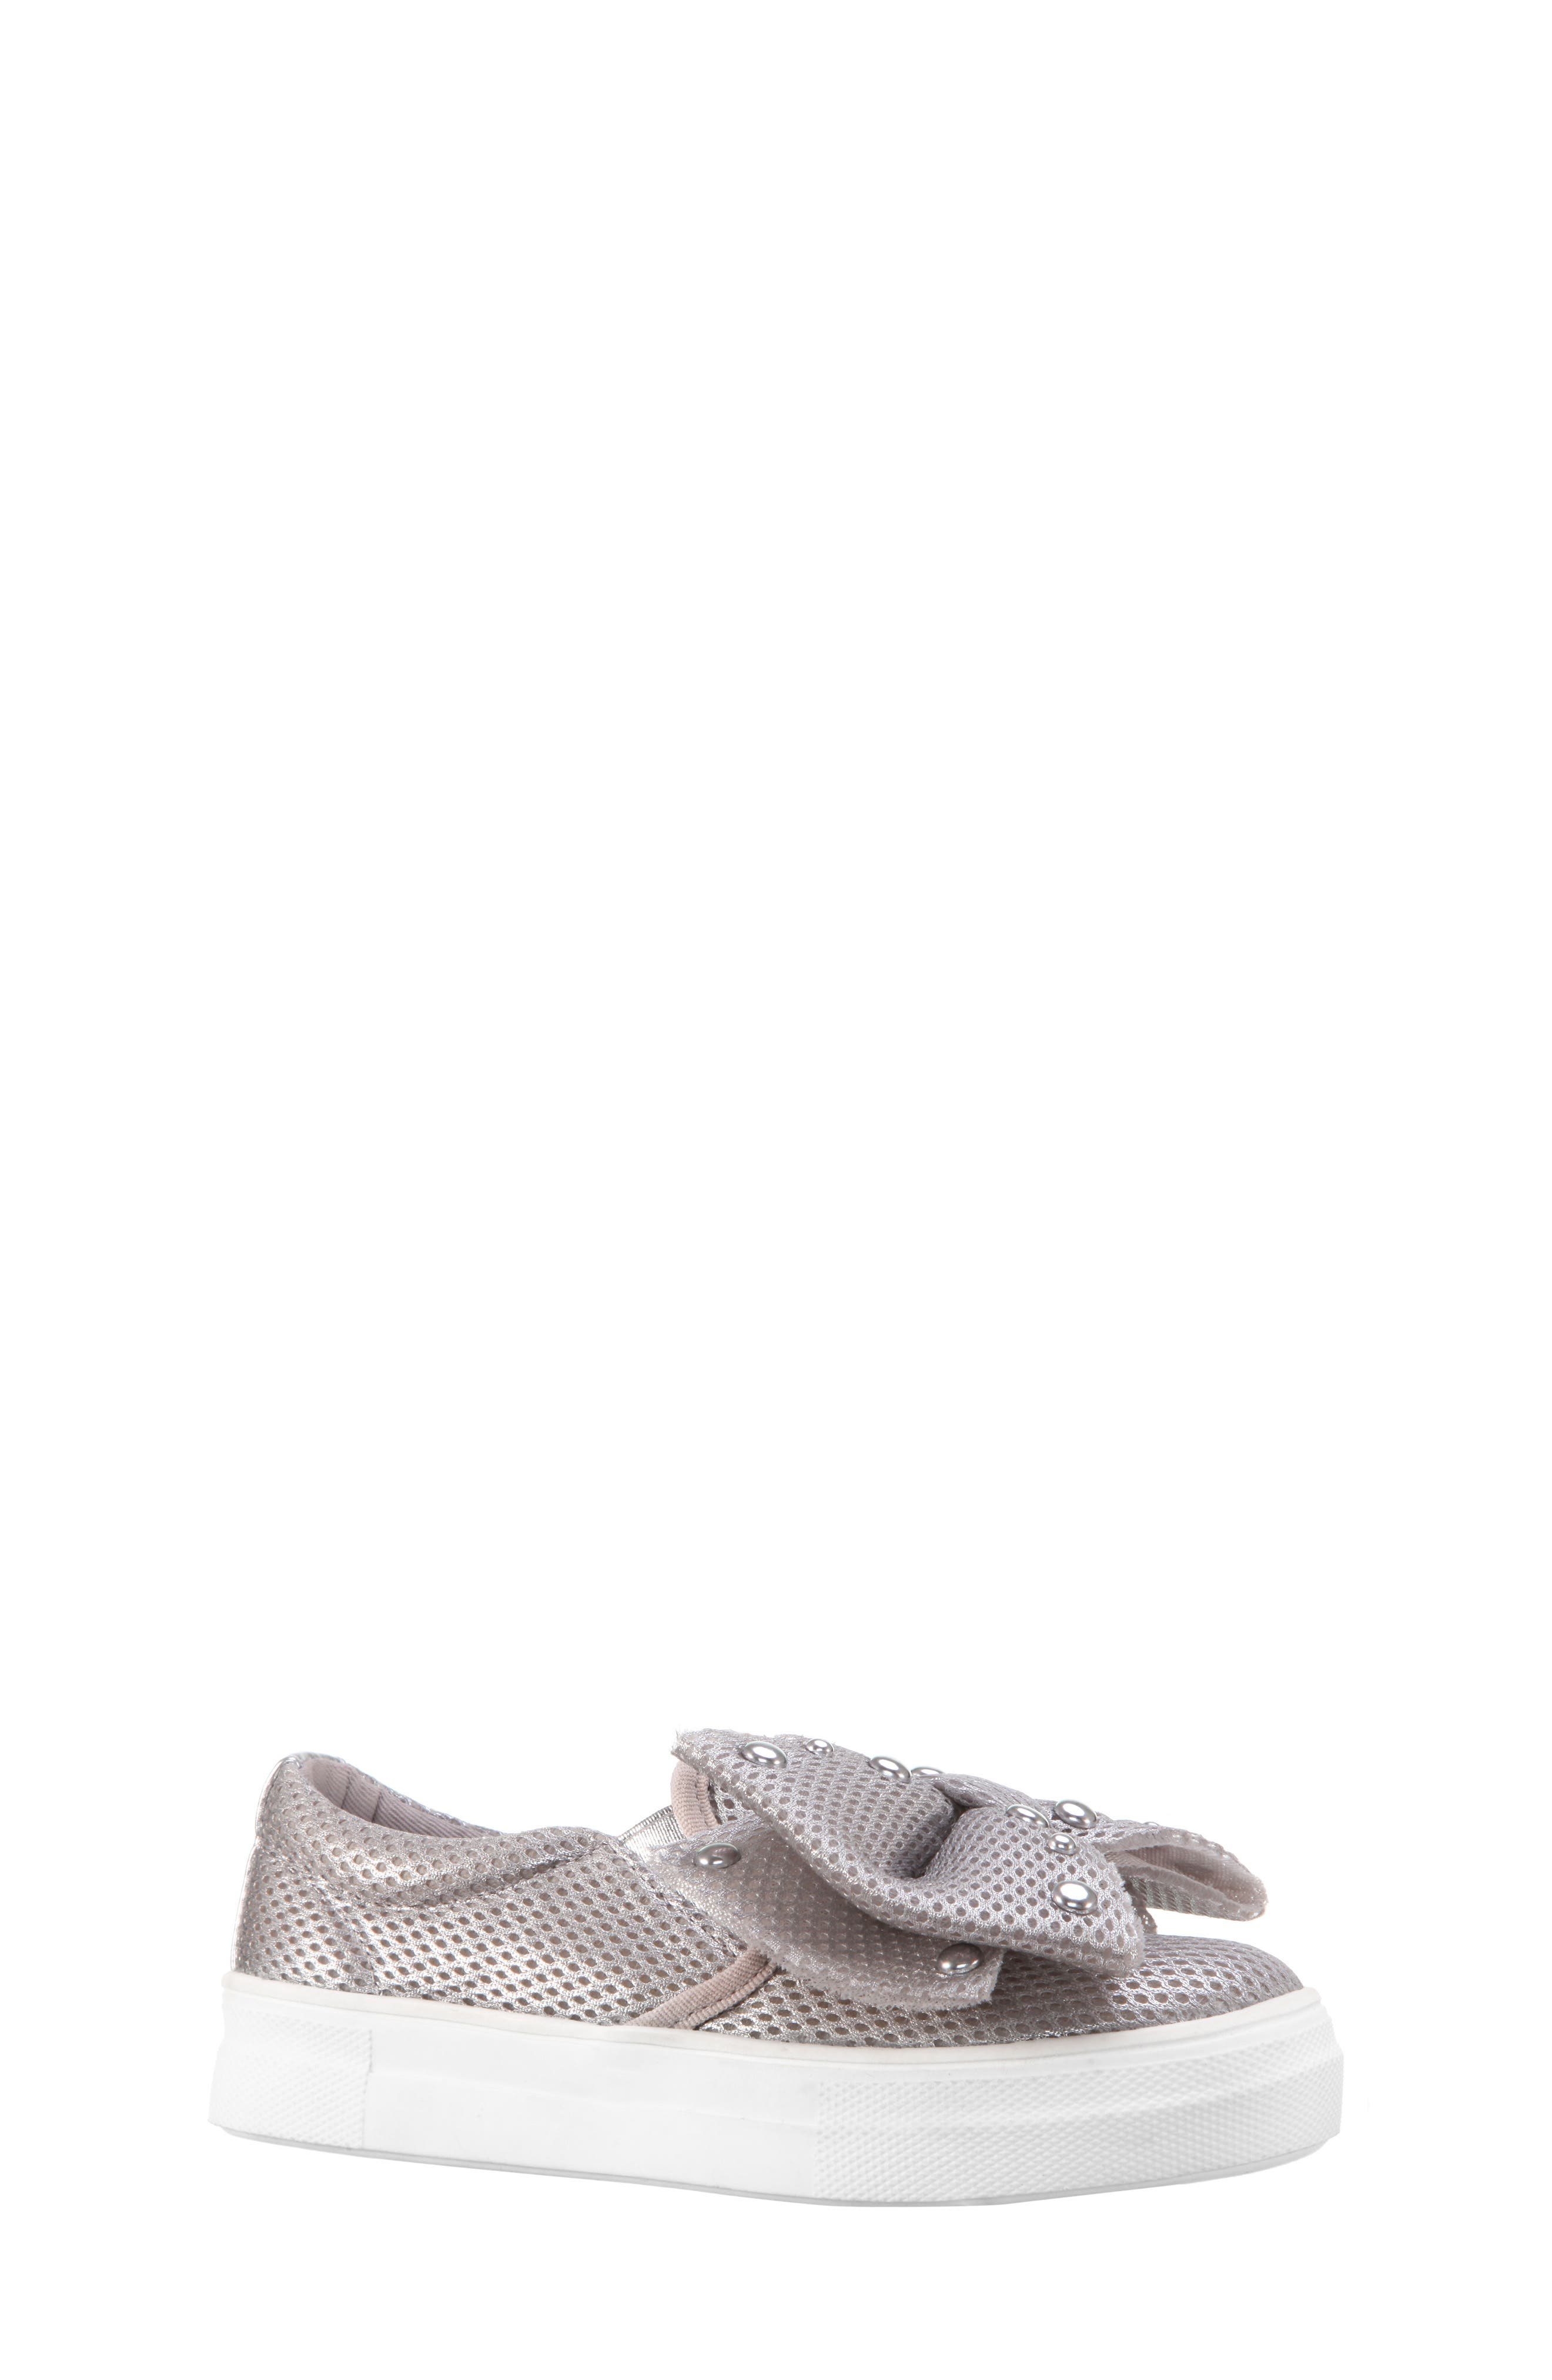 Mary Bow Slip-On Sneaker,                             Main thumbnail 1, color,                             Silver Mesh